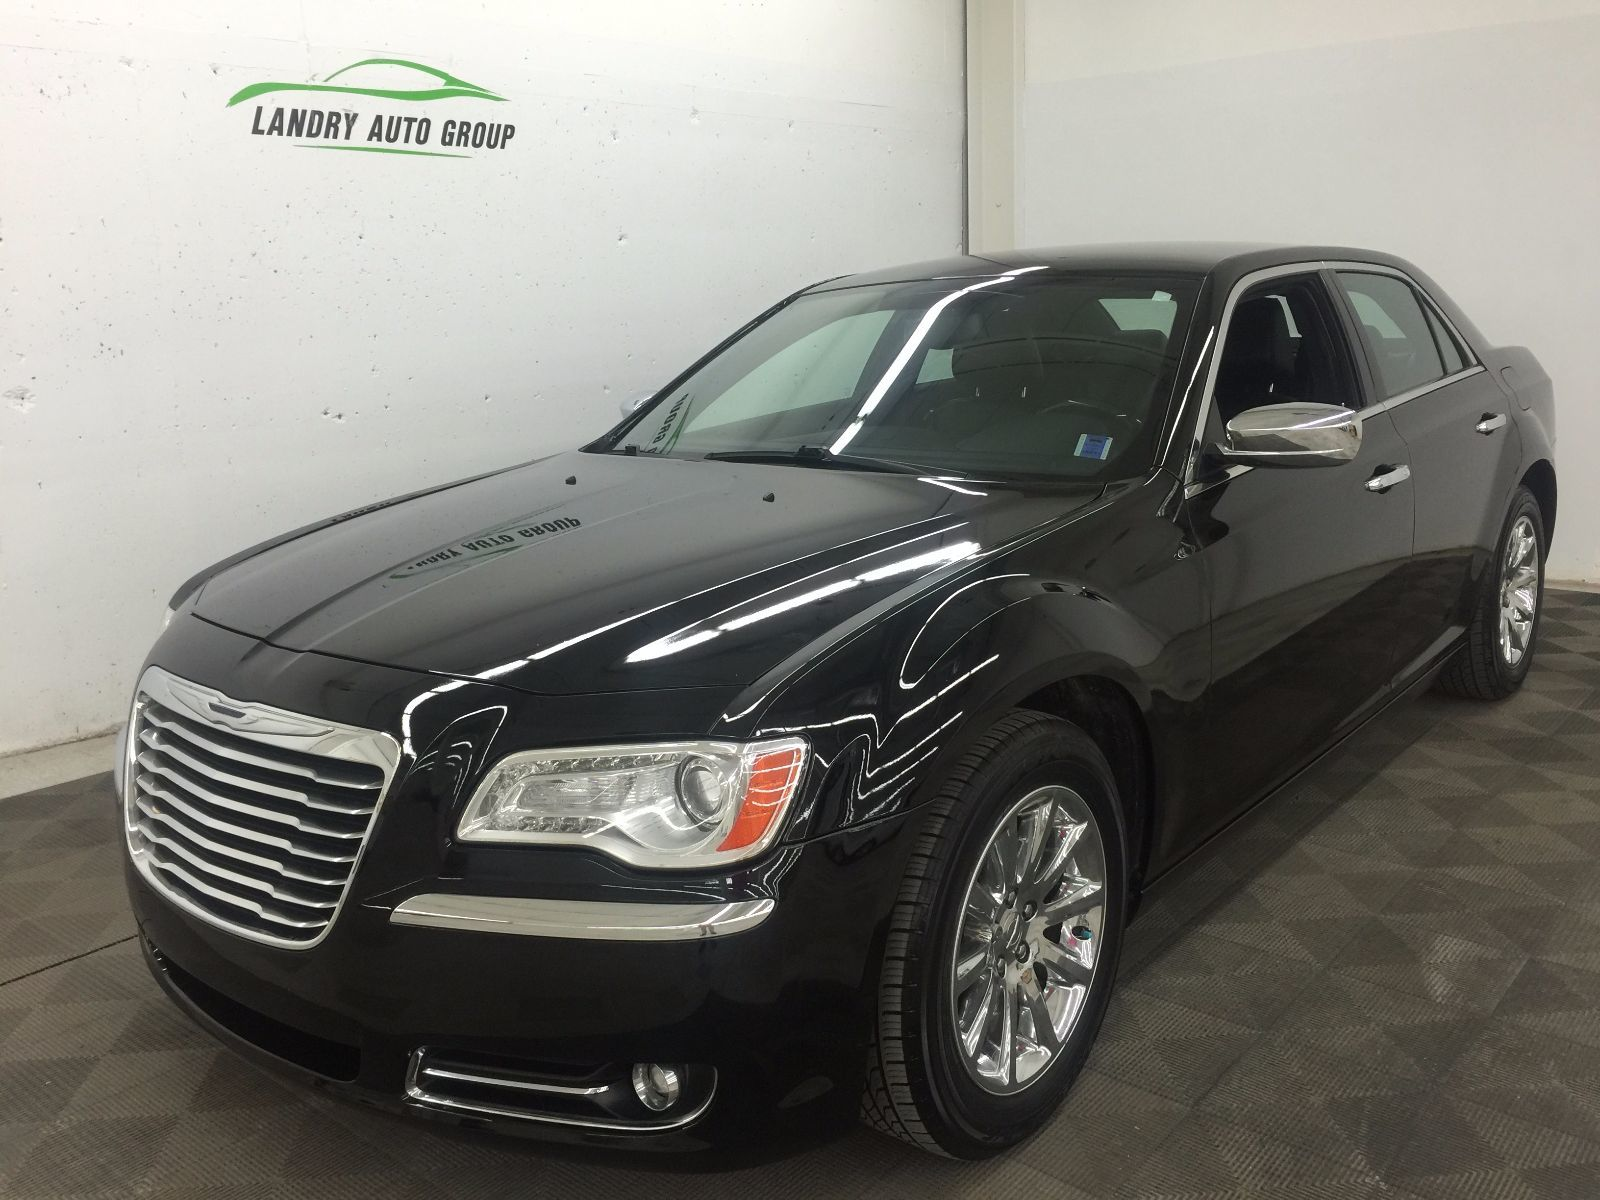 902 Auto Sales Used 2012 Chrysler 300 for sale in Dartmouth